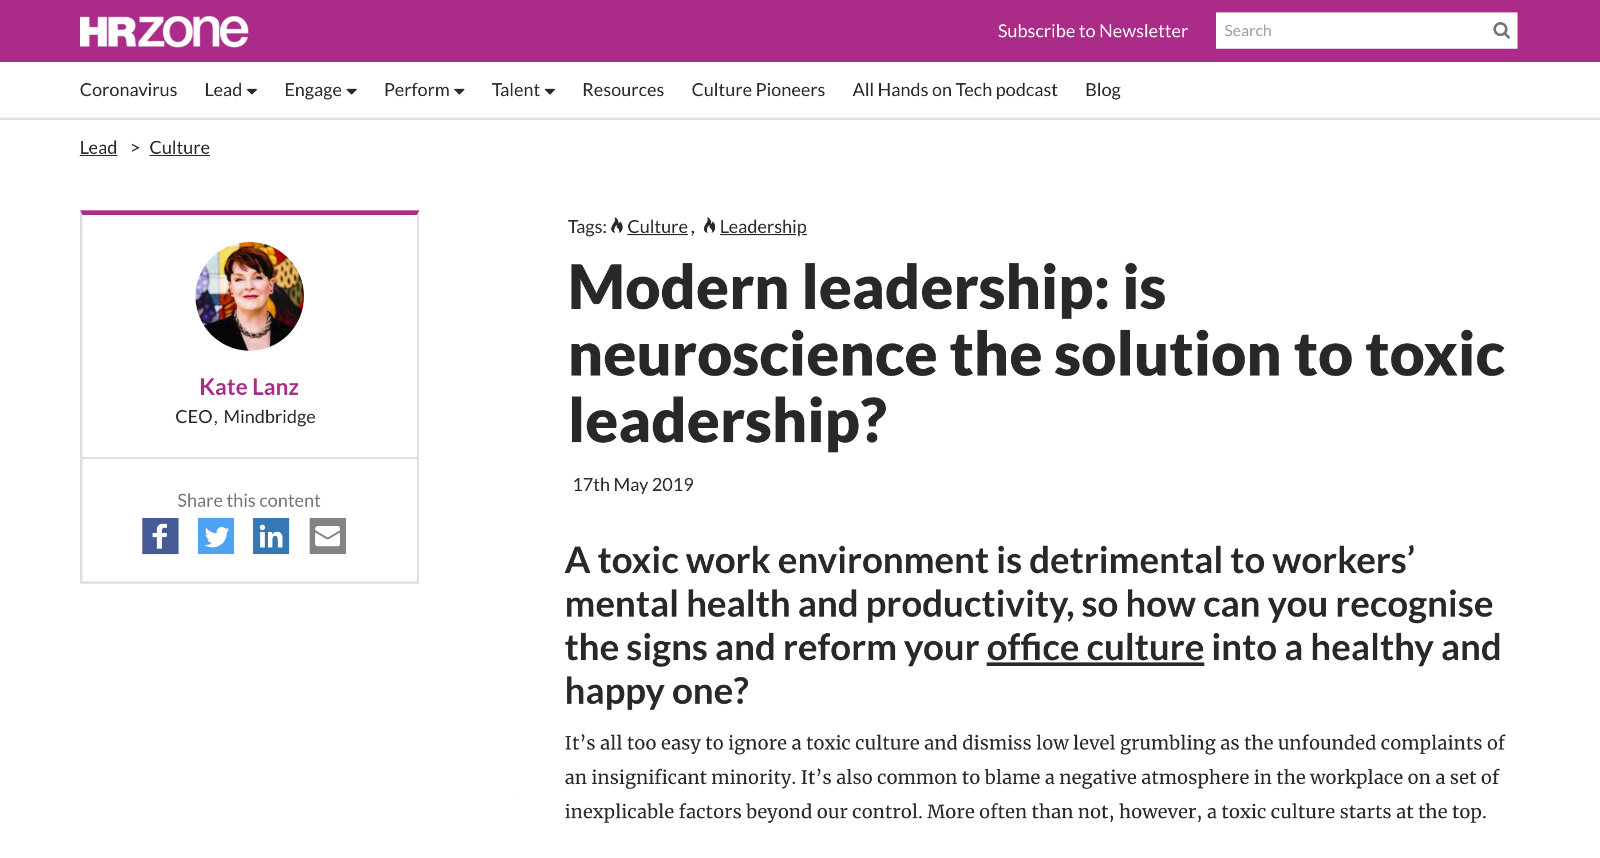 HR Zone Article is neuroscience the solution to toxic leadership